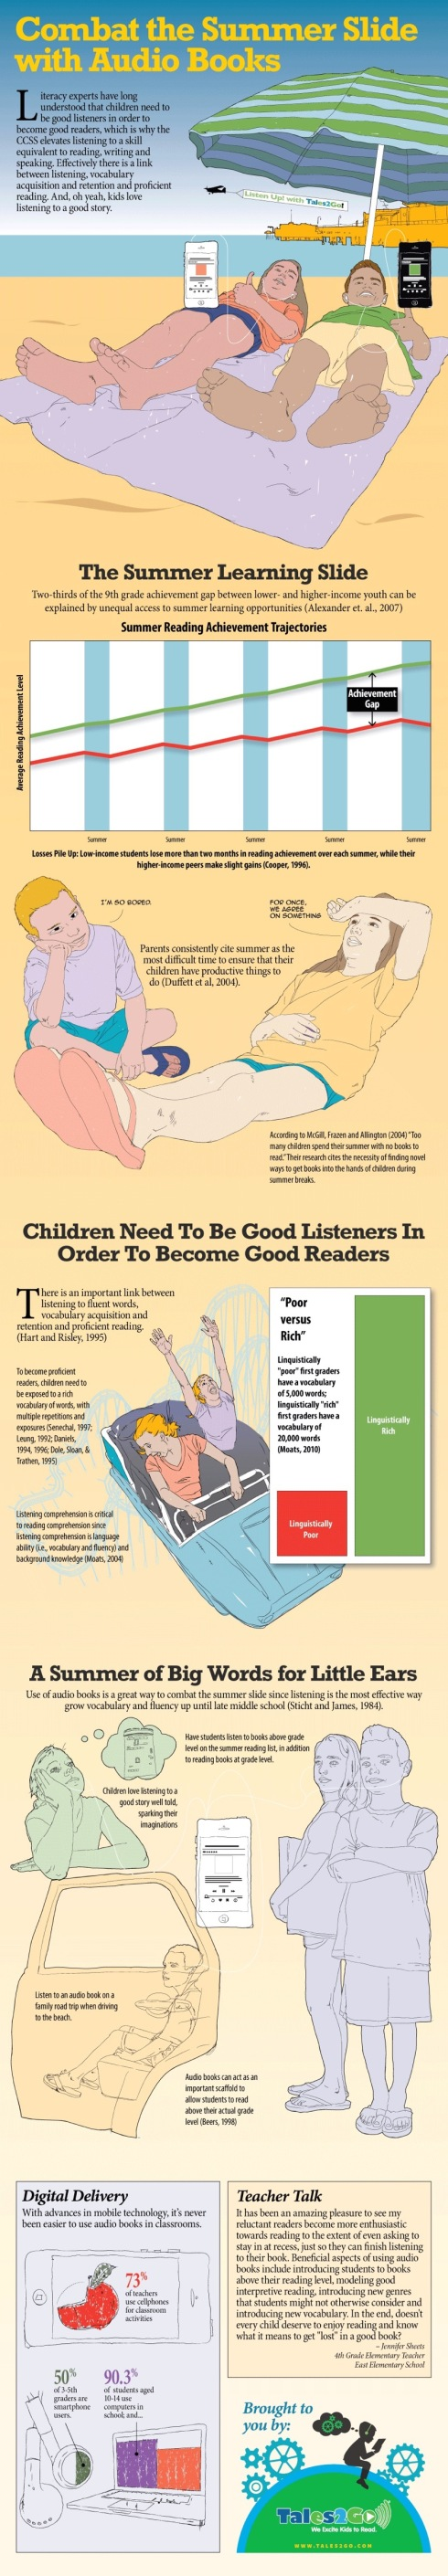 How-to-combat-the-summer-slide-with-audiobooks-full-infographic